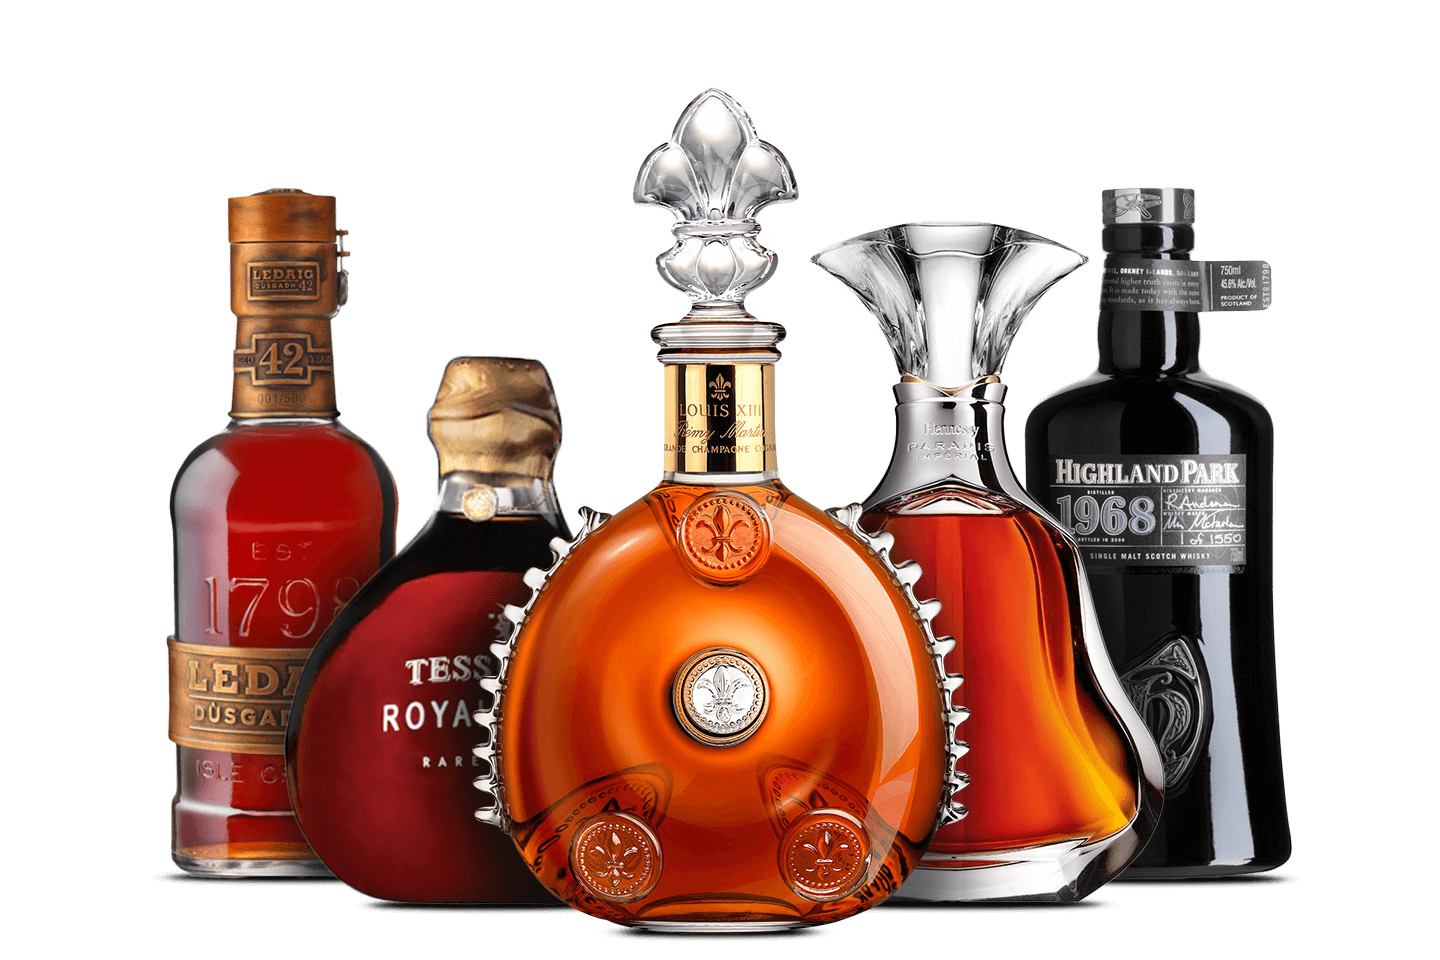 Luxury spirits